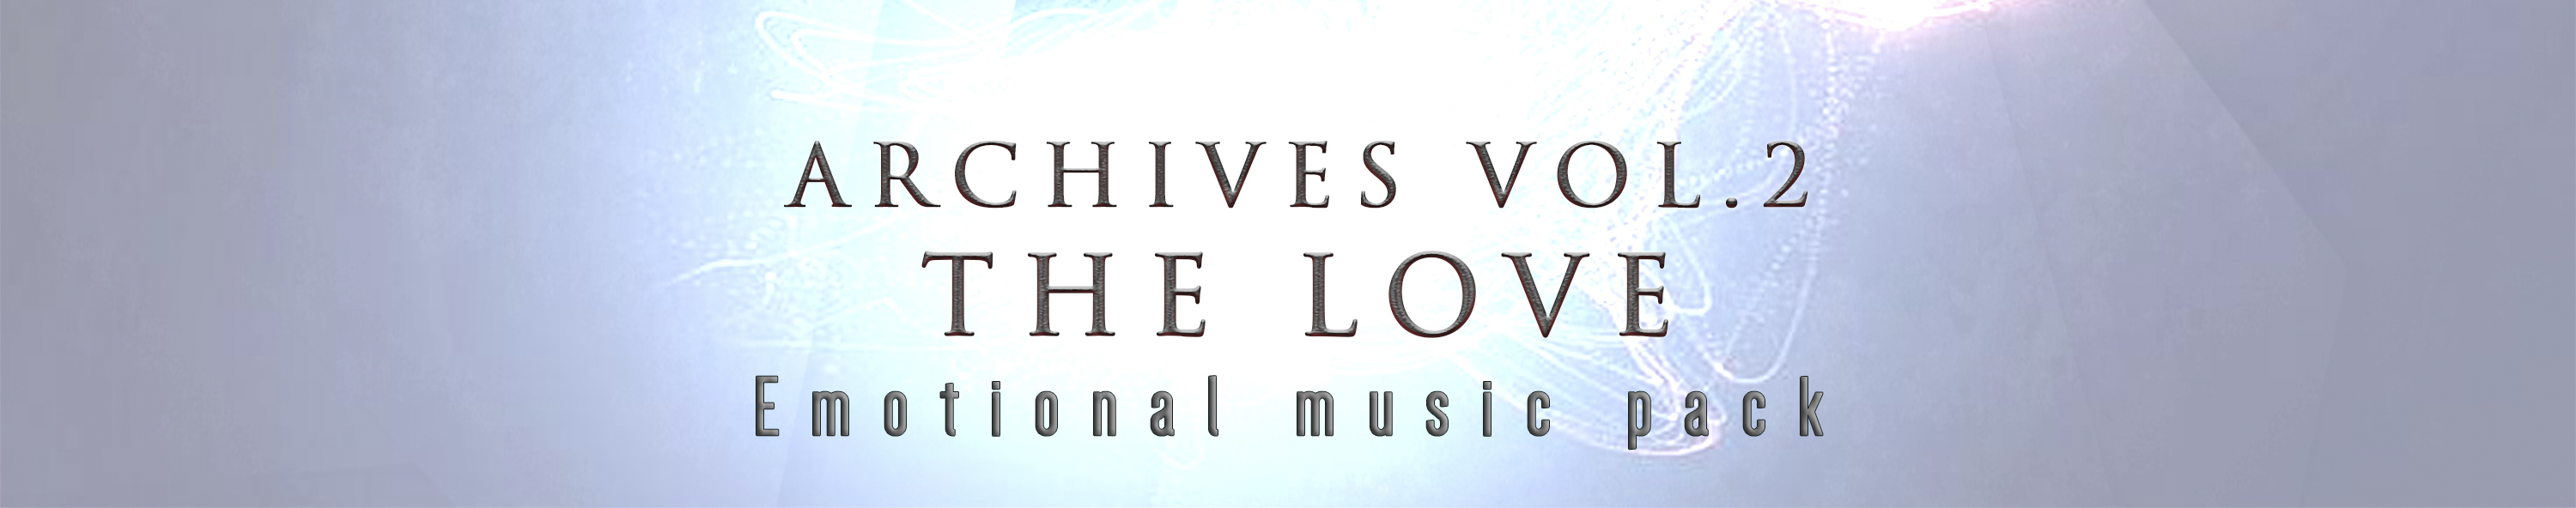 Archives vol2 The love